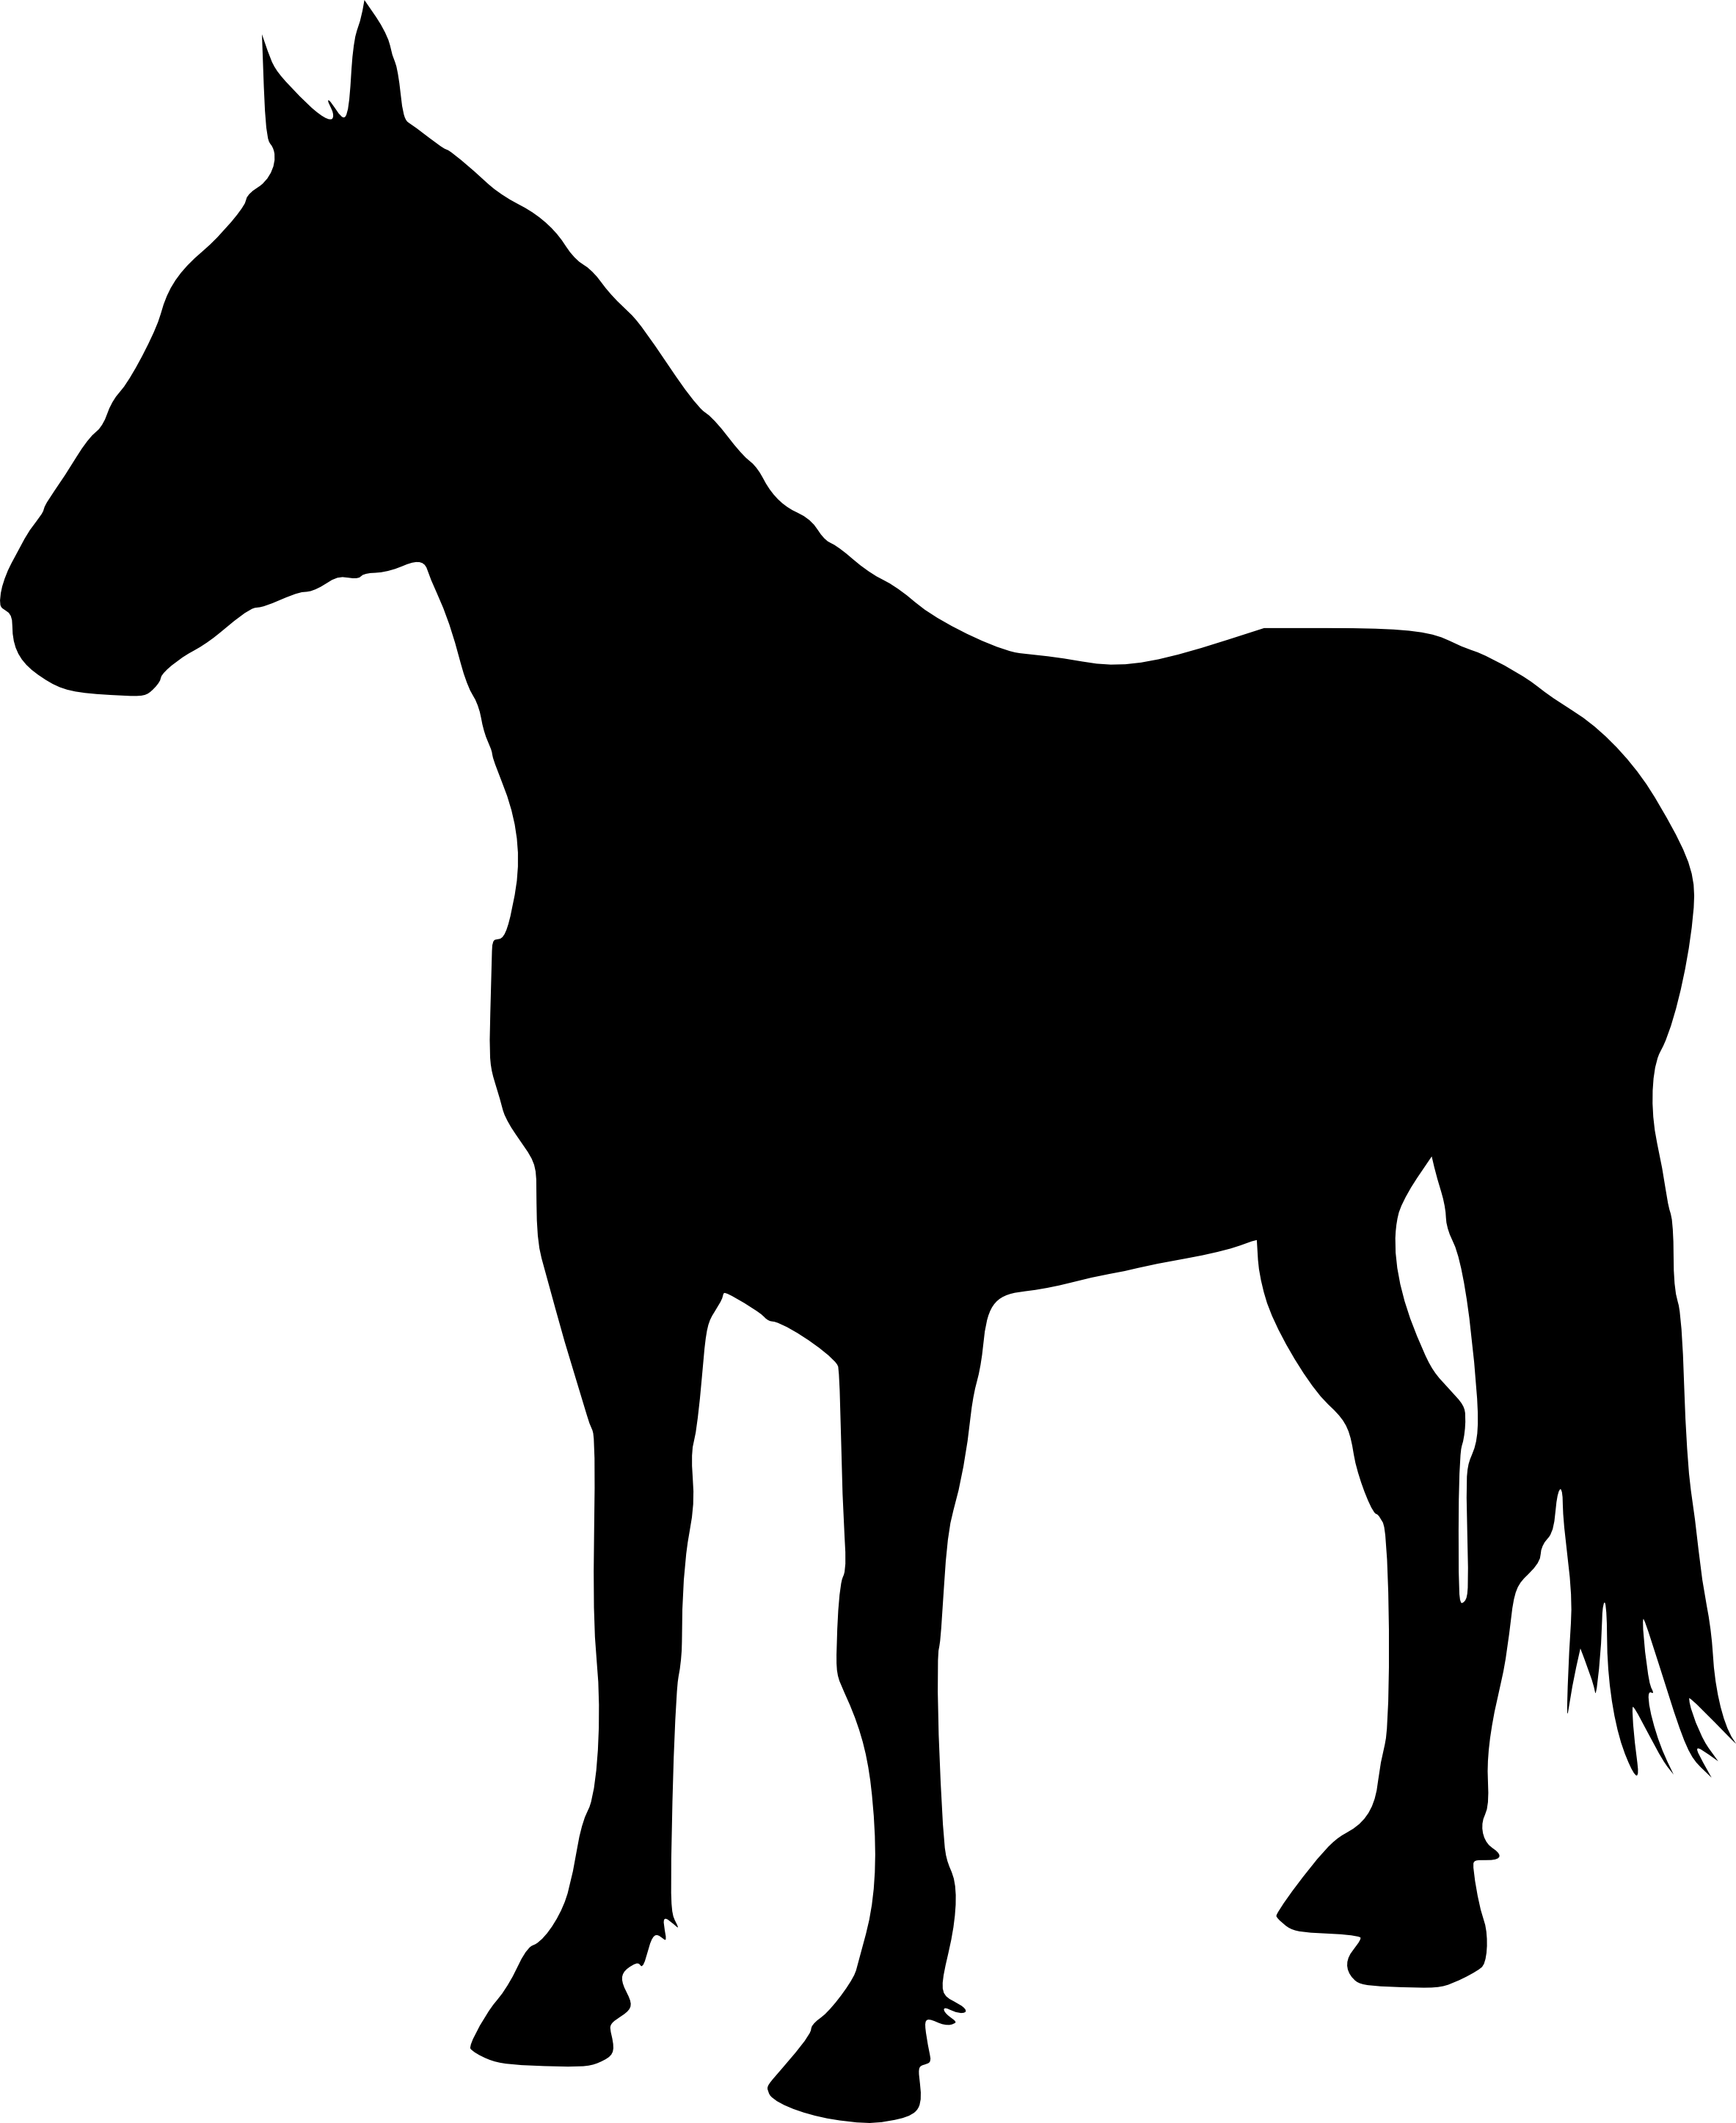 5 Horse Silhouette (PNG Transparent).